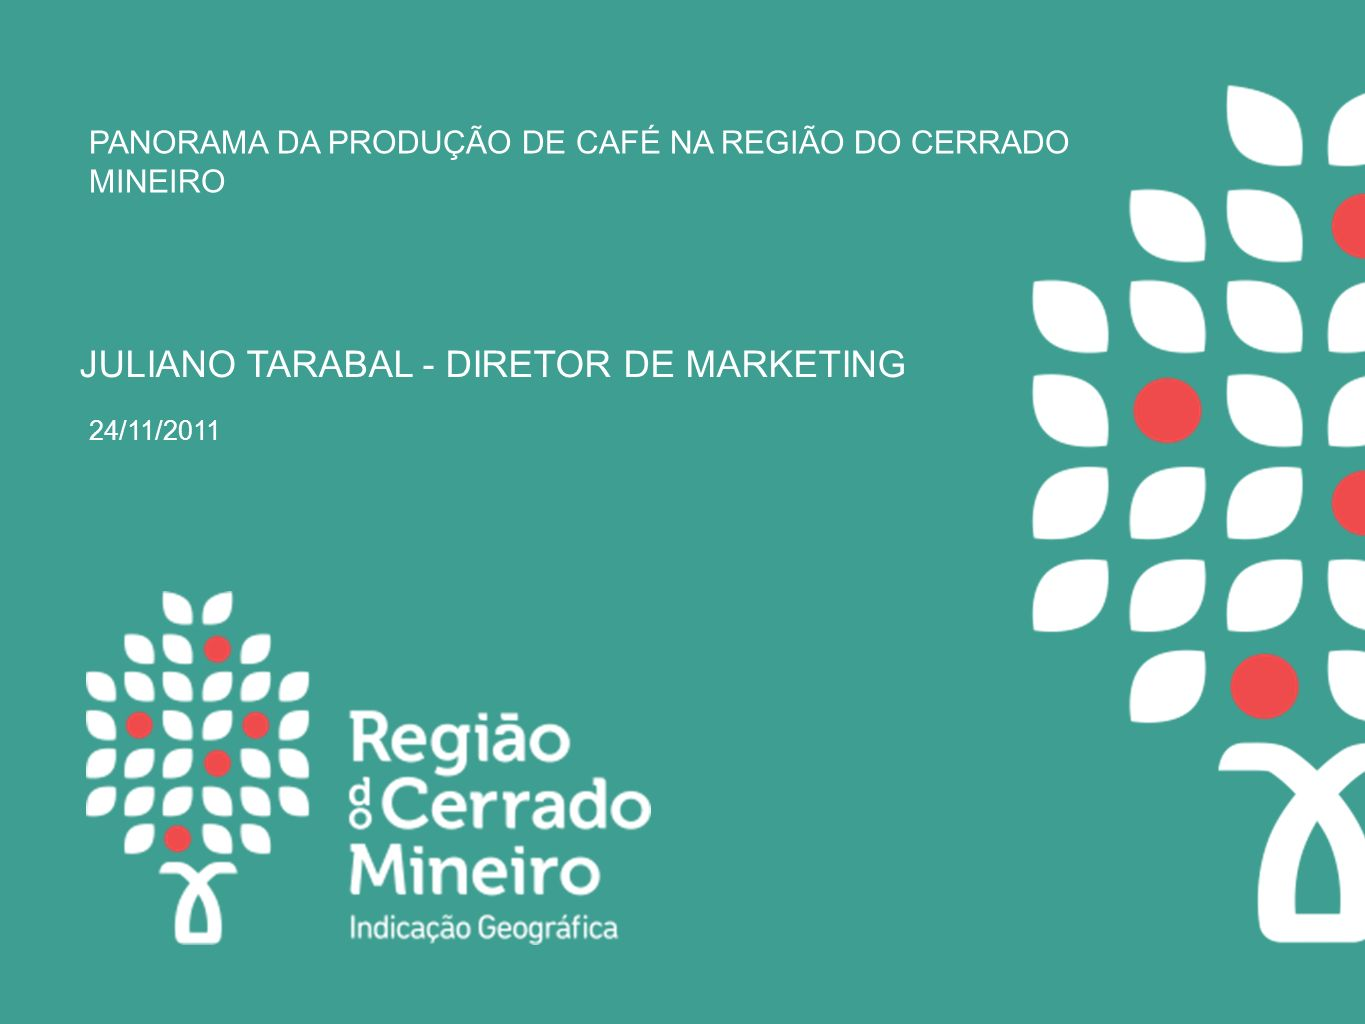 JULIANO TARABAL - DIRETOR DE MARKETING